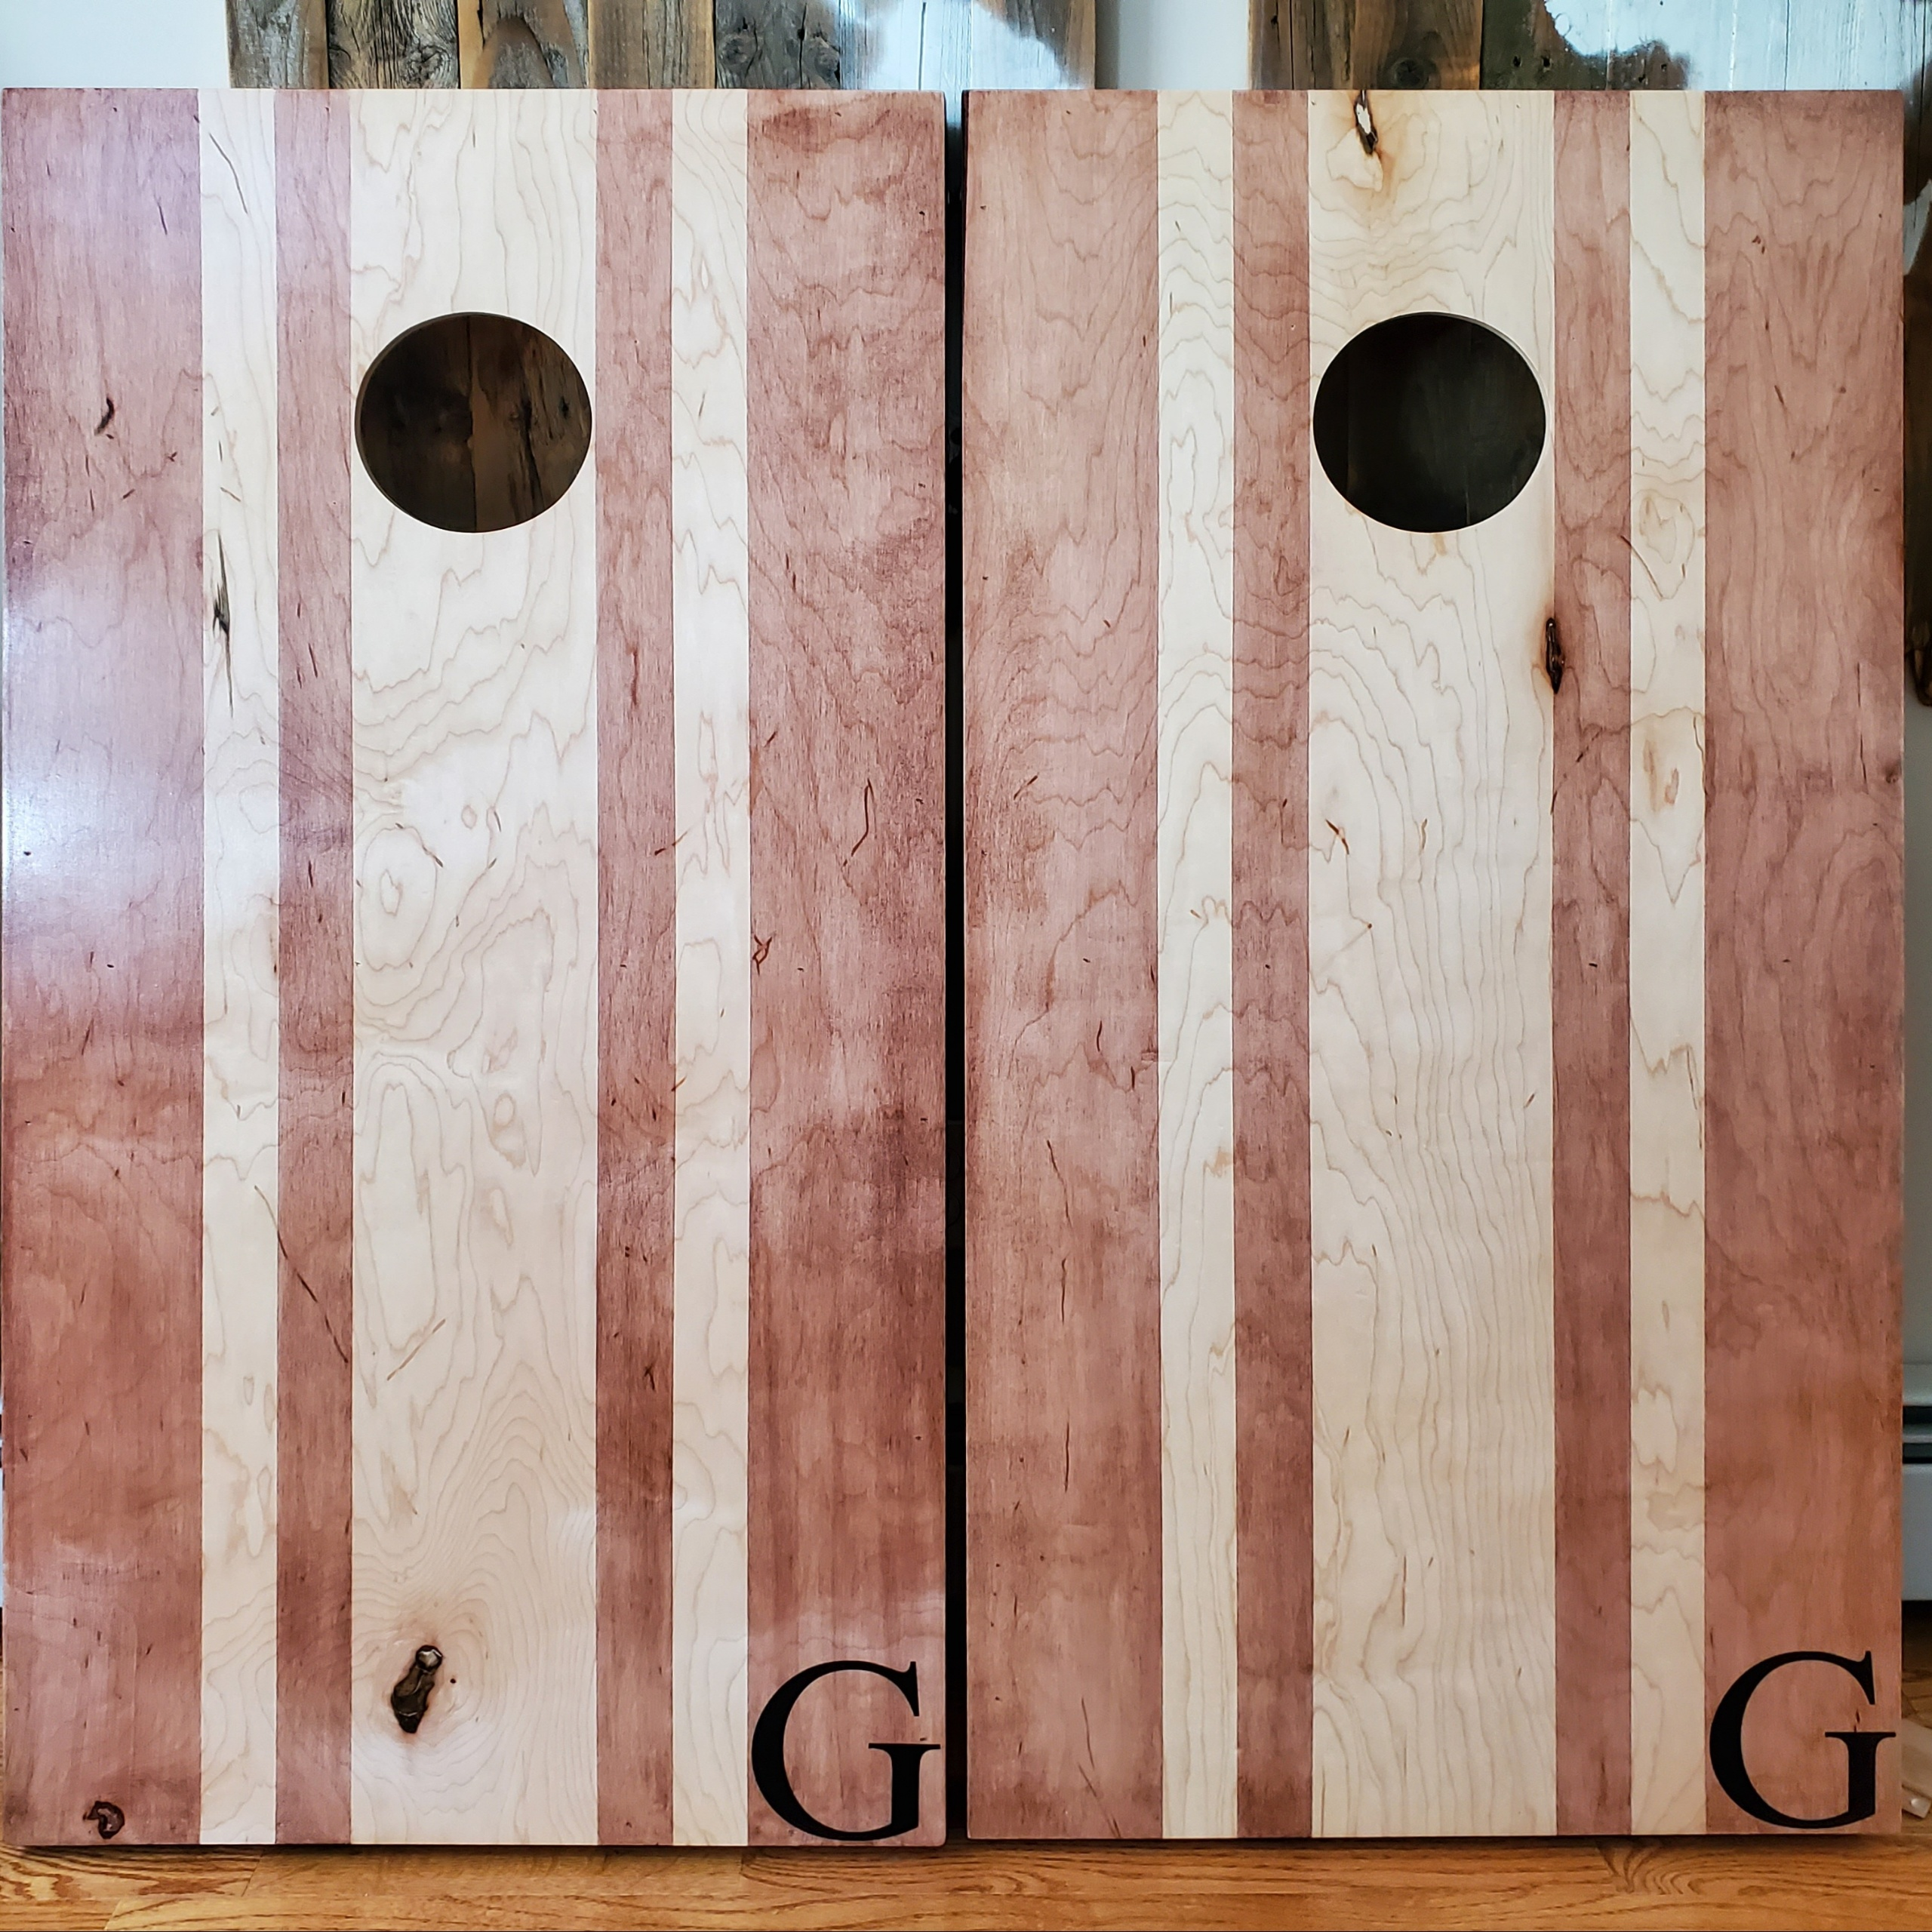 Custom Letter Size and Placement Cornhole Set